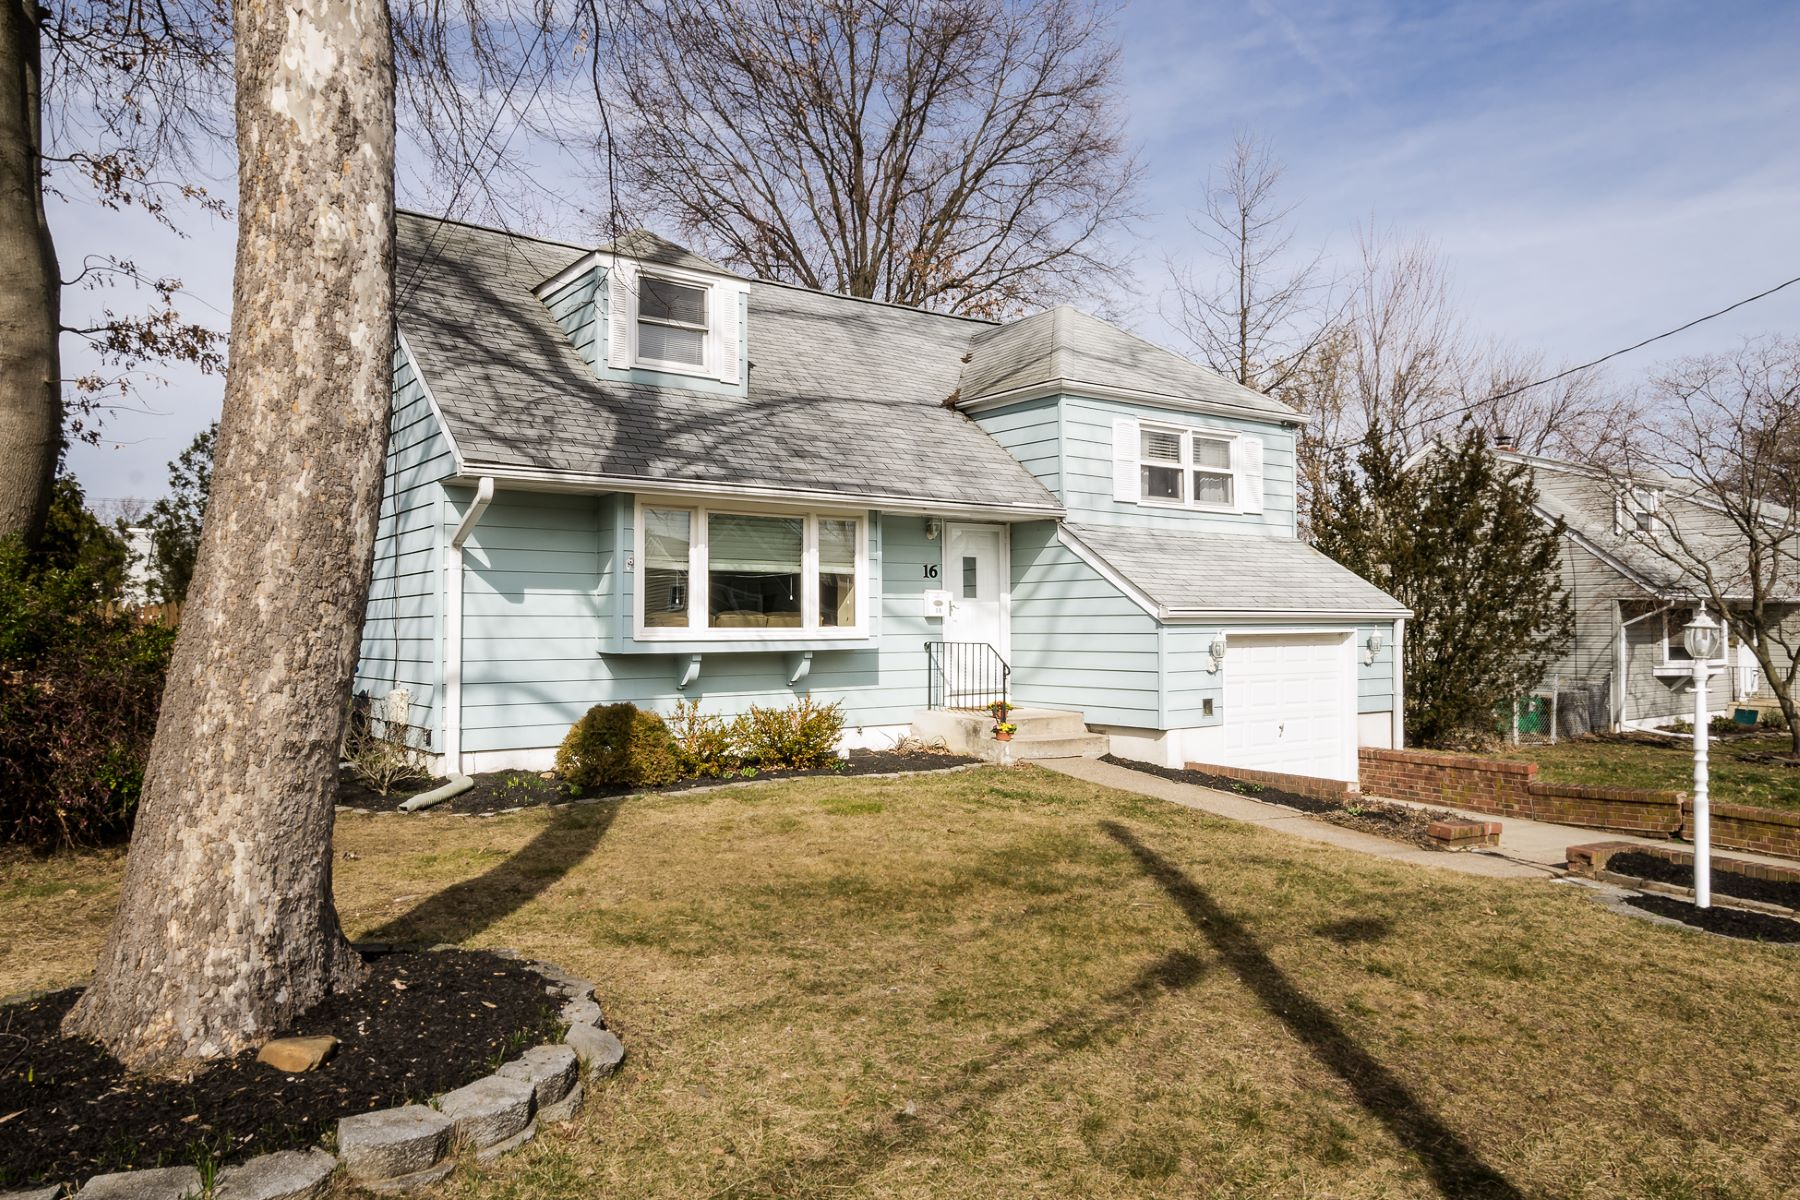 Single Family Home for Sale at Charming Sunset Manor House 16 Tekening Way Hamilton, New Jersey 08690 United States